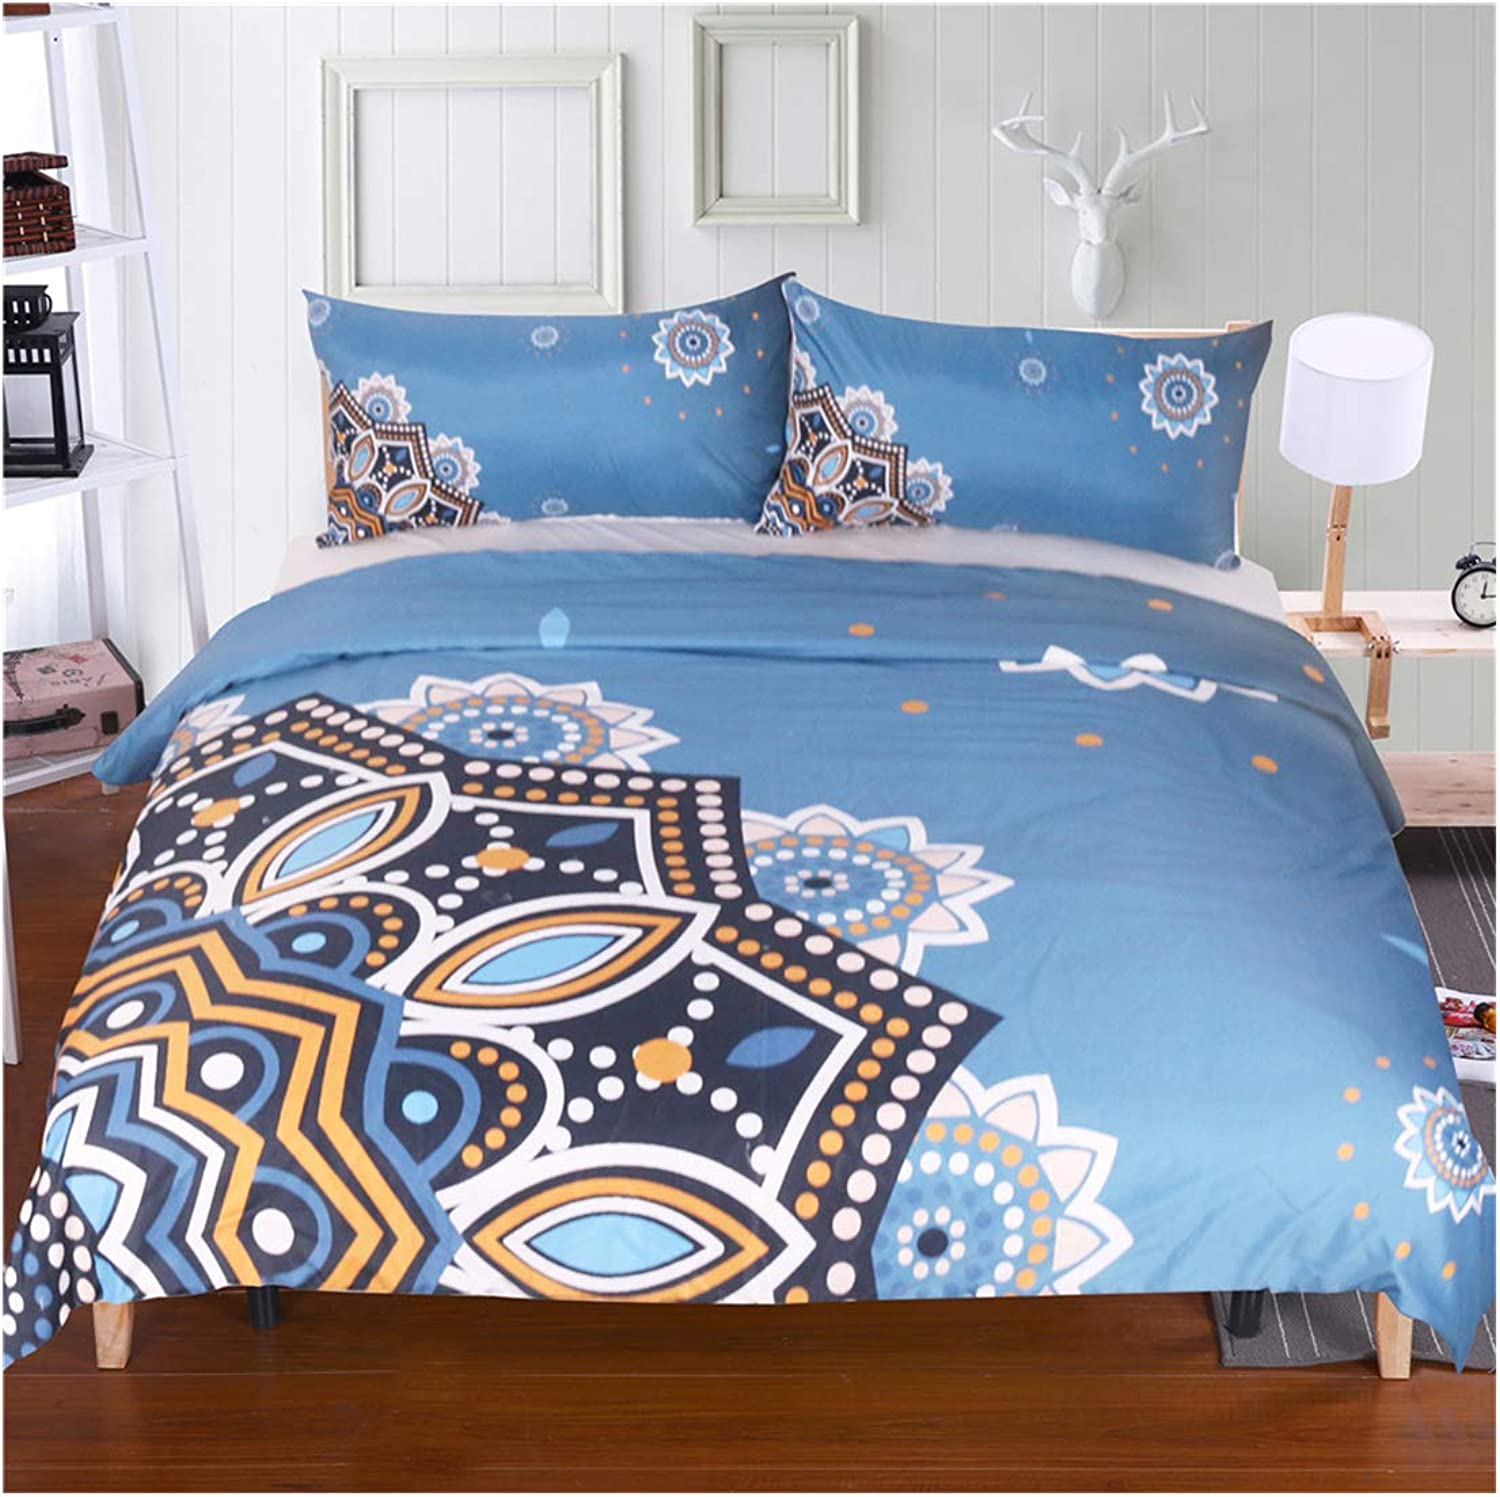 Homebed Microfiber Duvet Set 3D Bronze Flower Gradient Duvet Cover and Pillowcase Indian bluee Floral Bedding Cover Set